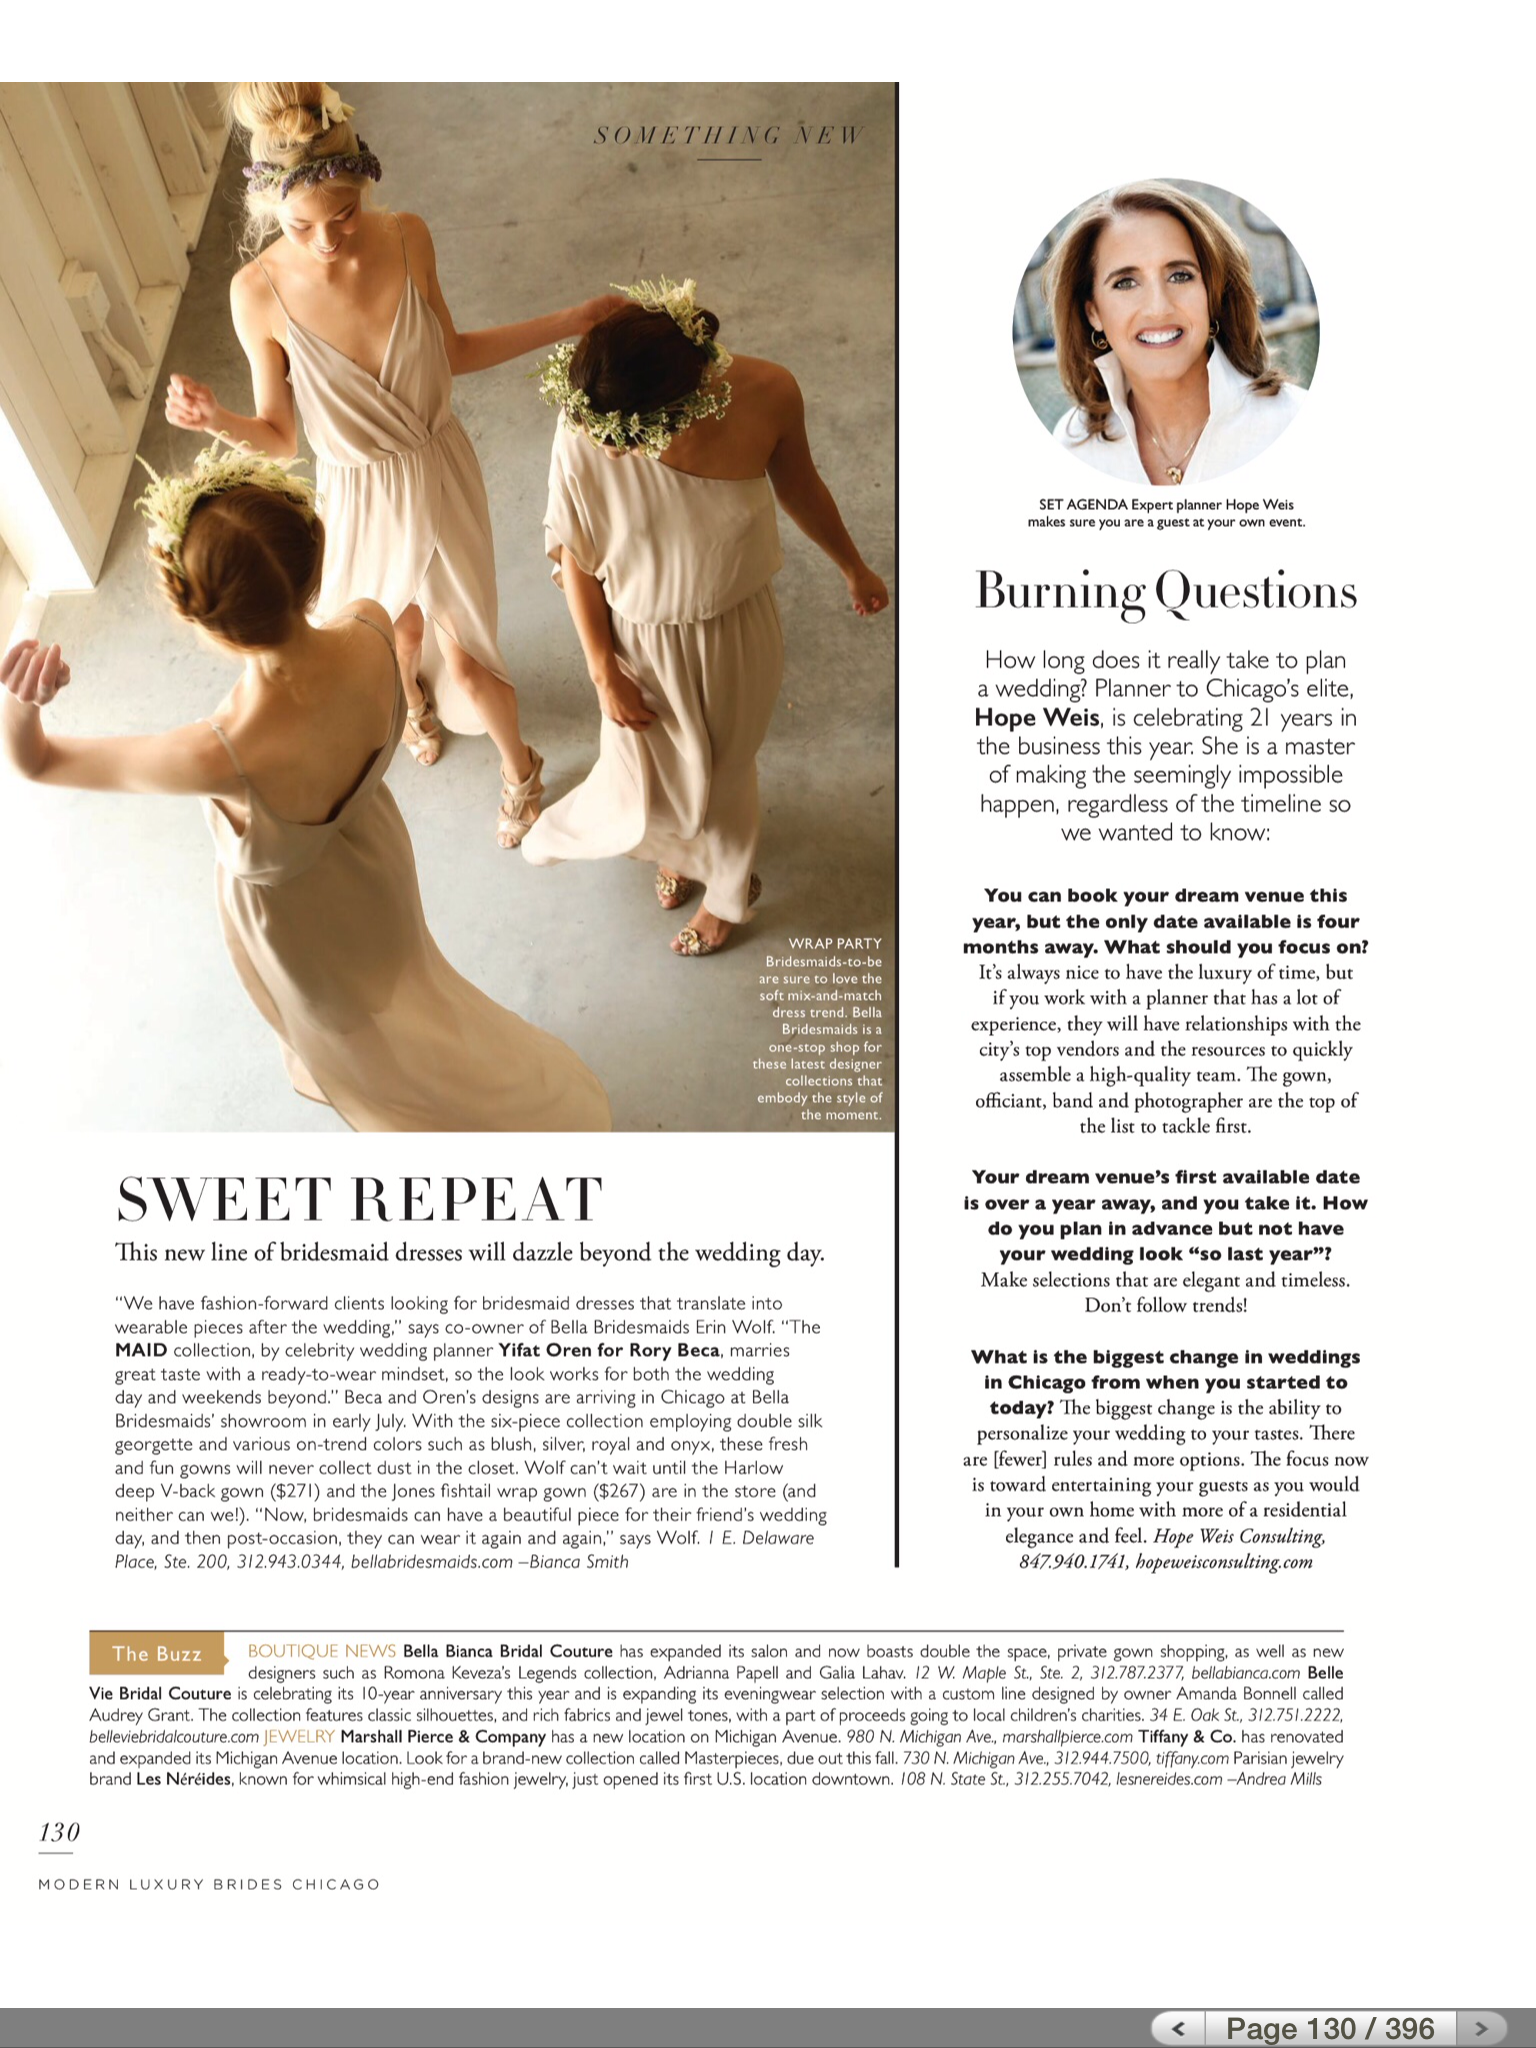 Modern Luxury Brides Chicago - Burning Questions